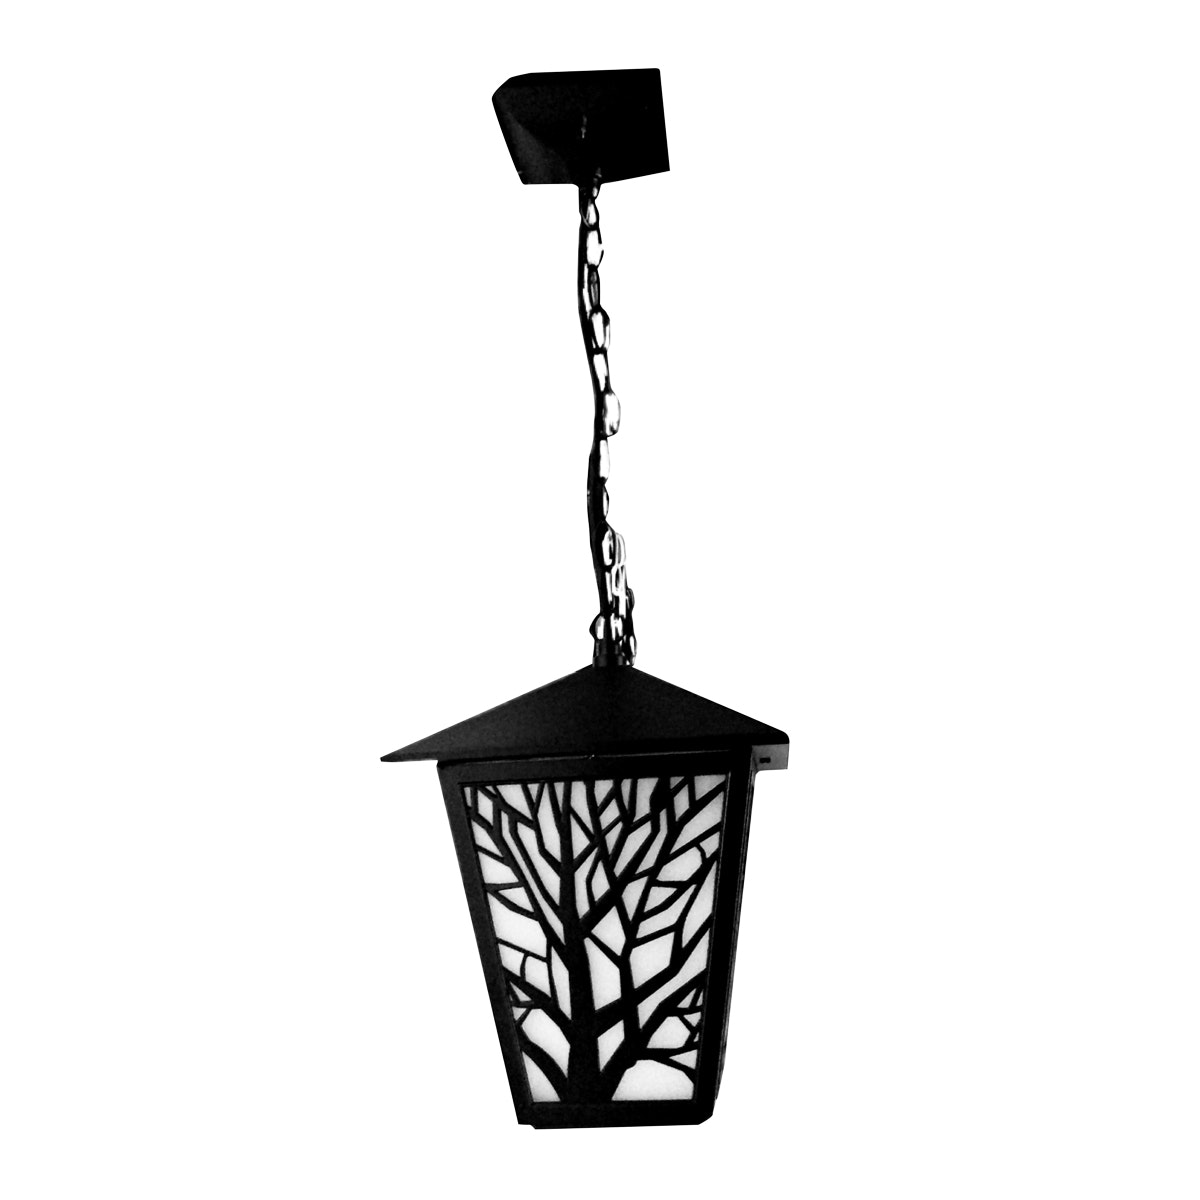 3+Projects Pendant Lamp Black E27 socket, Glass/PC diffuser,aluminium material, IP44 226*657 MAX 40W,CFL